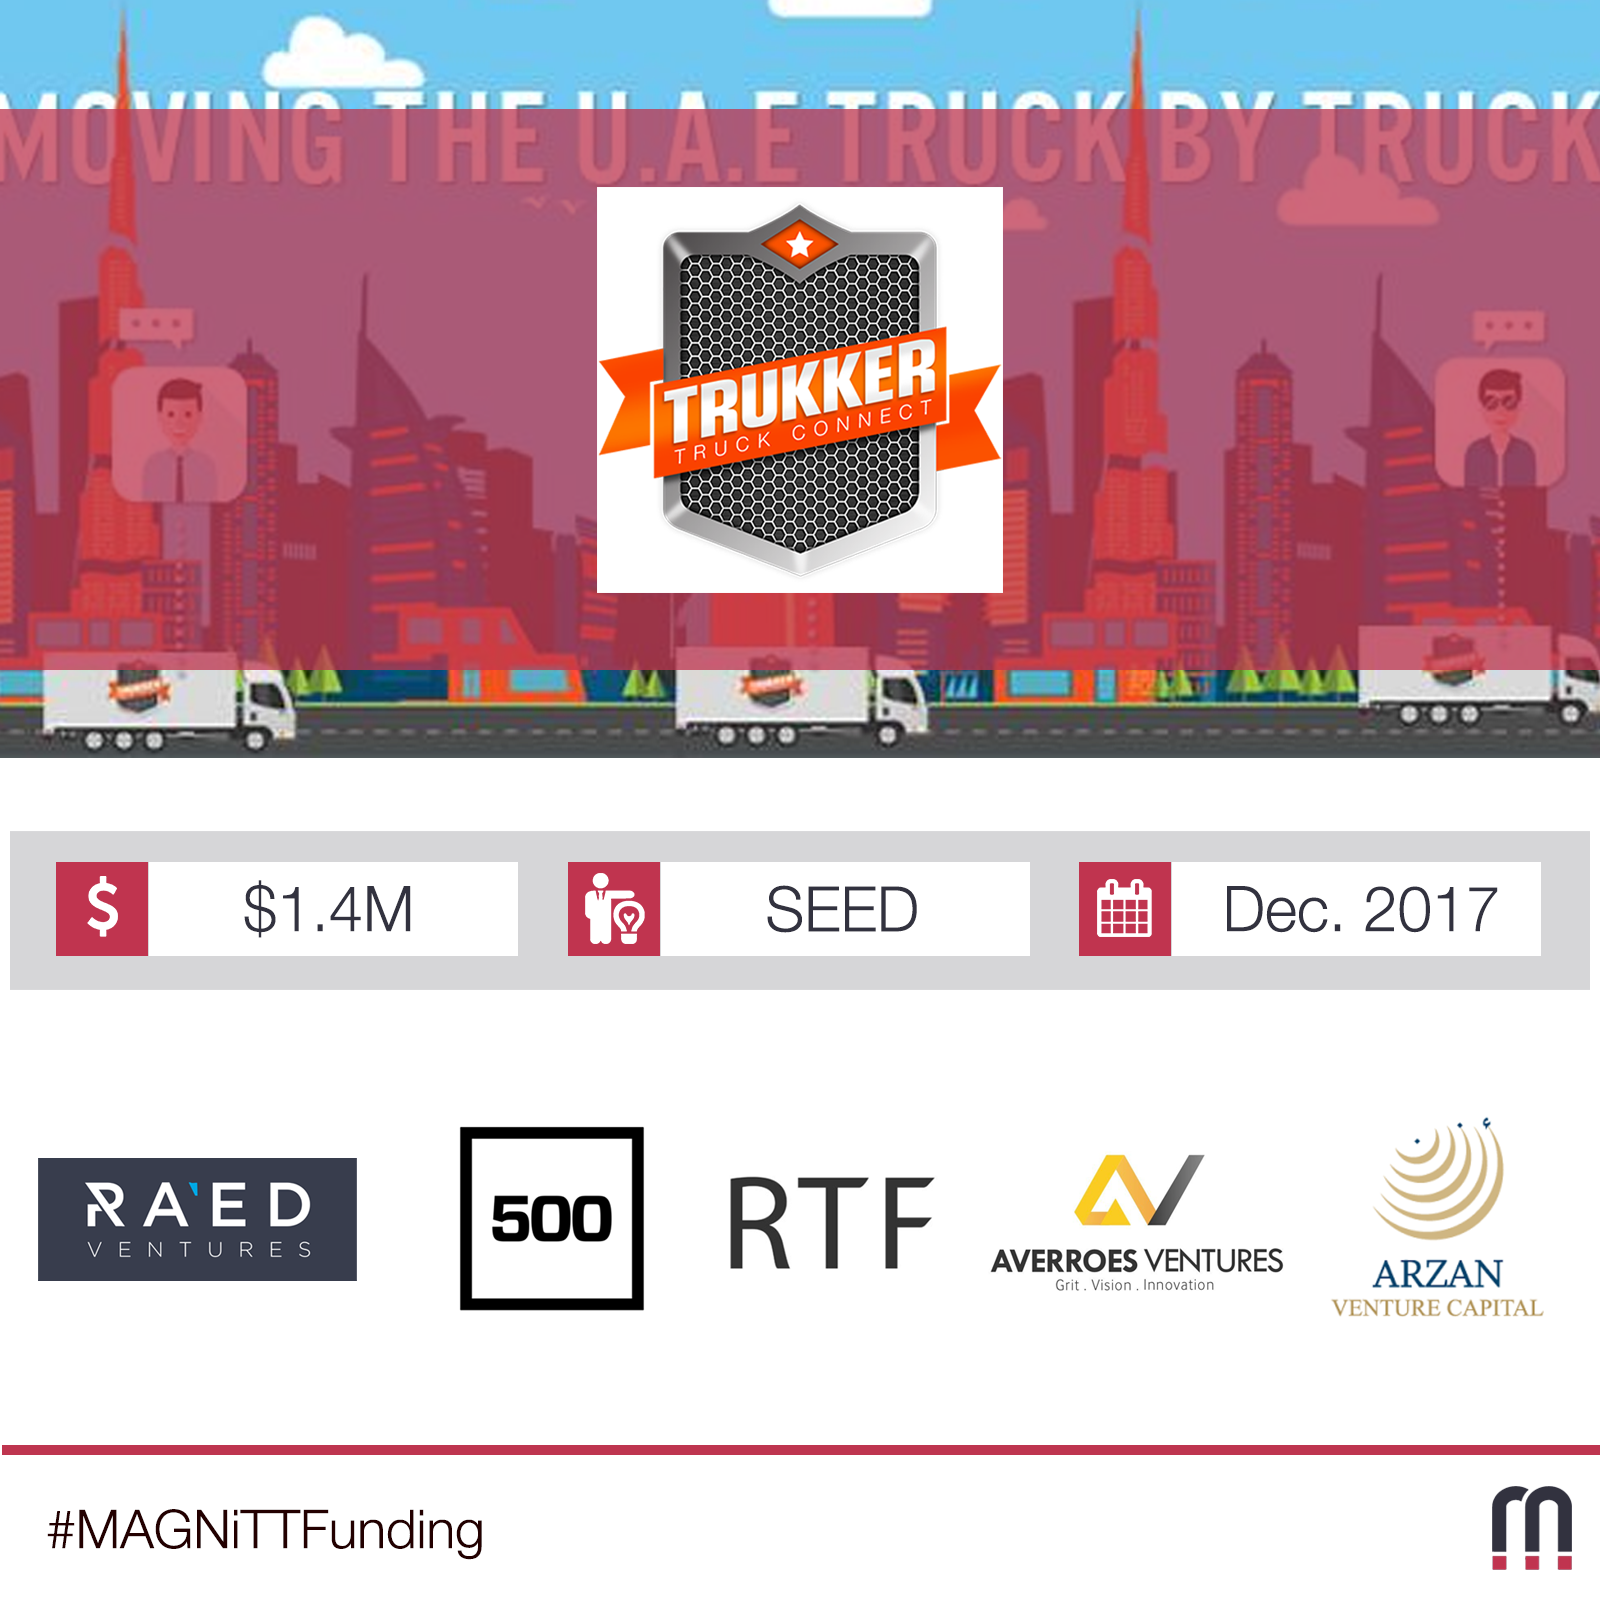 TruKKer raises $1.4M seed round led by RAED ventures along with Riyad Taqnia Fund